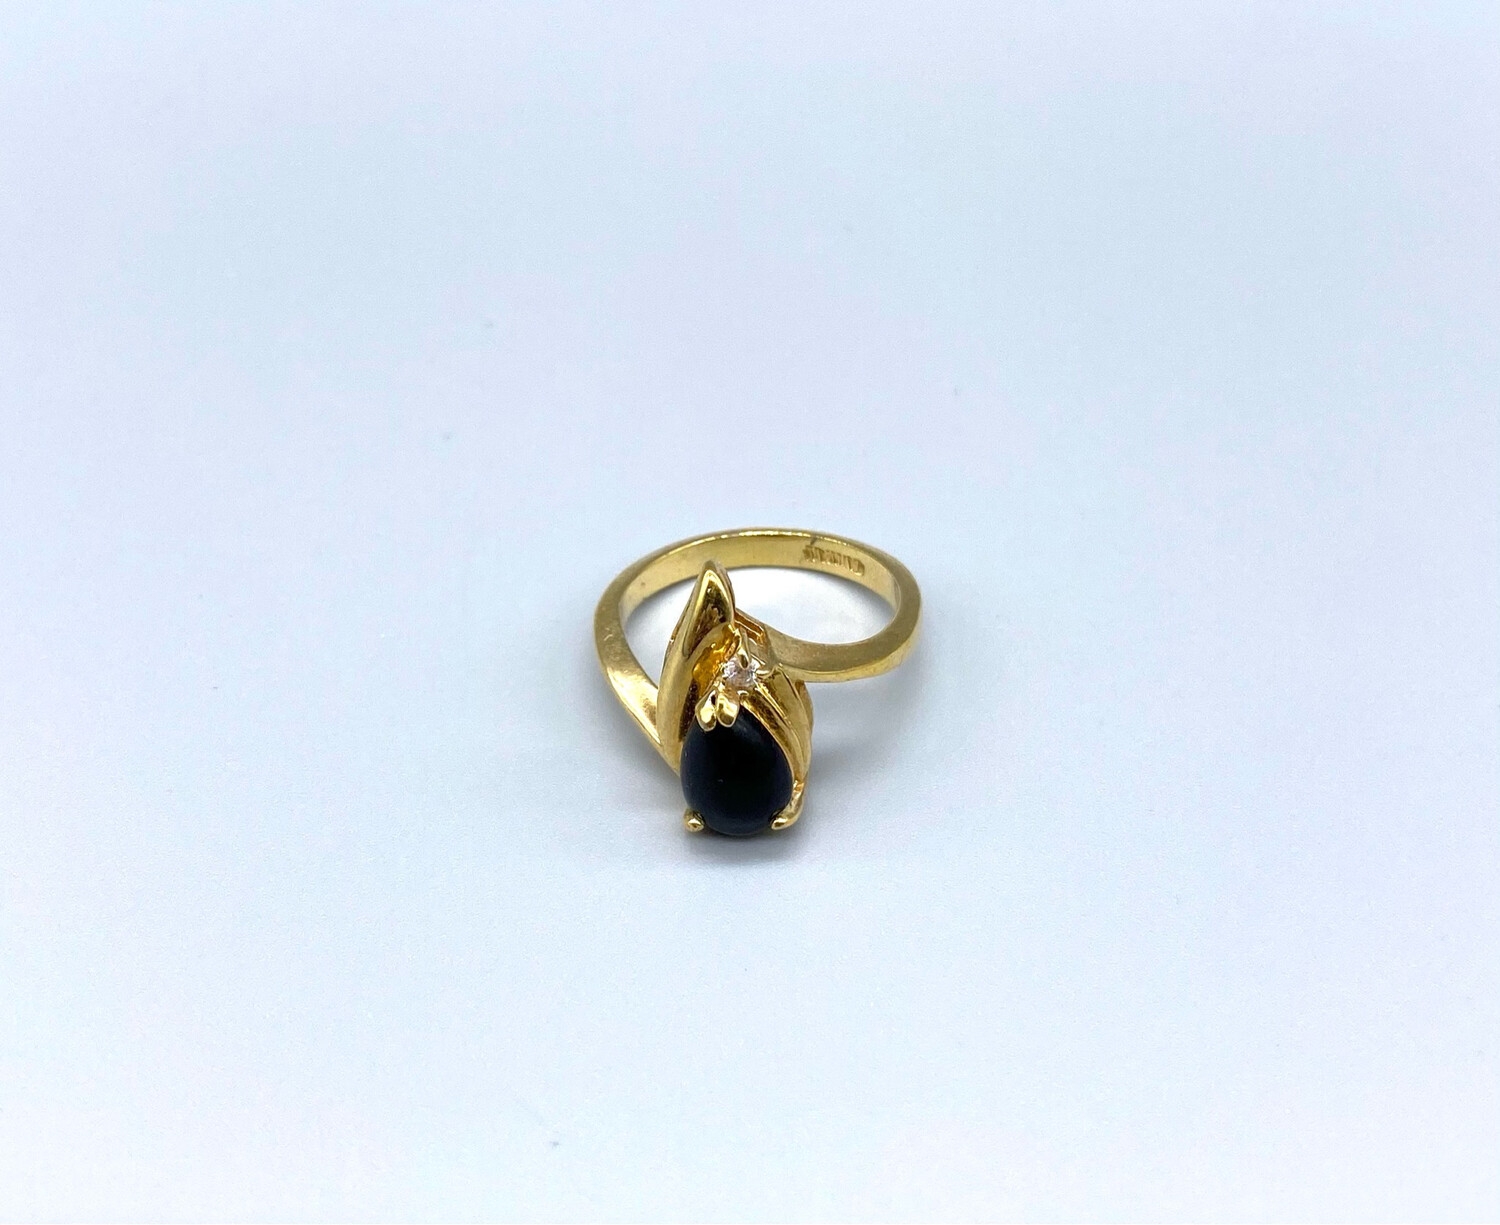 Gold Ring With Black Gemstone